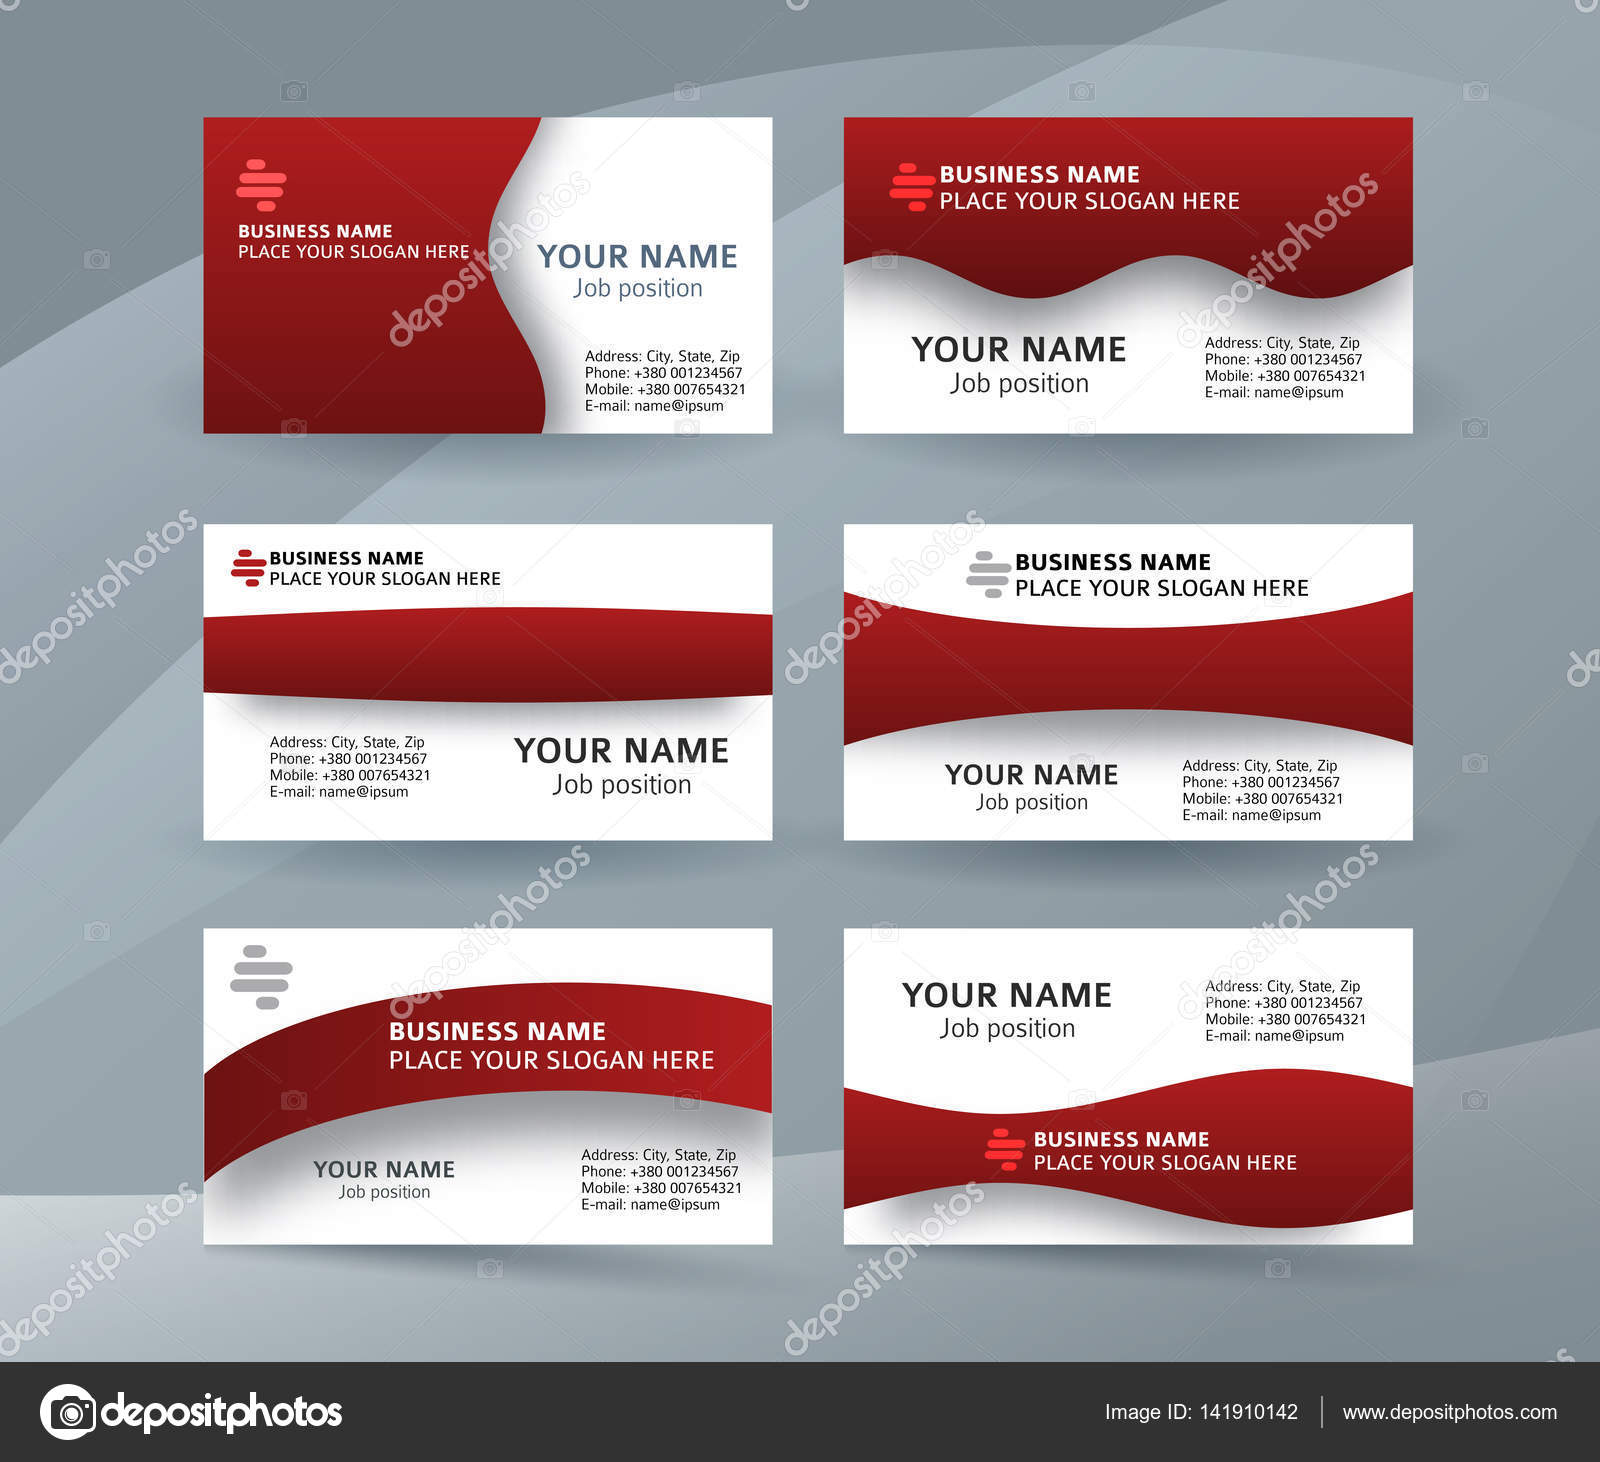 Set of simple pattern business card layout sided red04 stock abstract professional and designer business card template or clear and minimal visiting card set name card red background vector illustration eps 10 for reheart Images